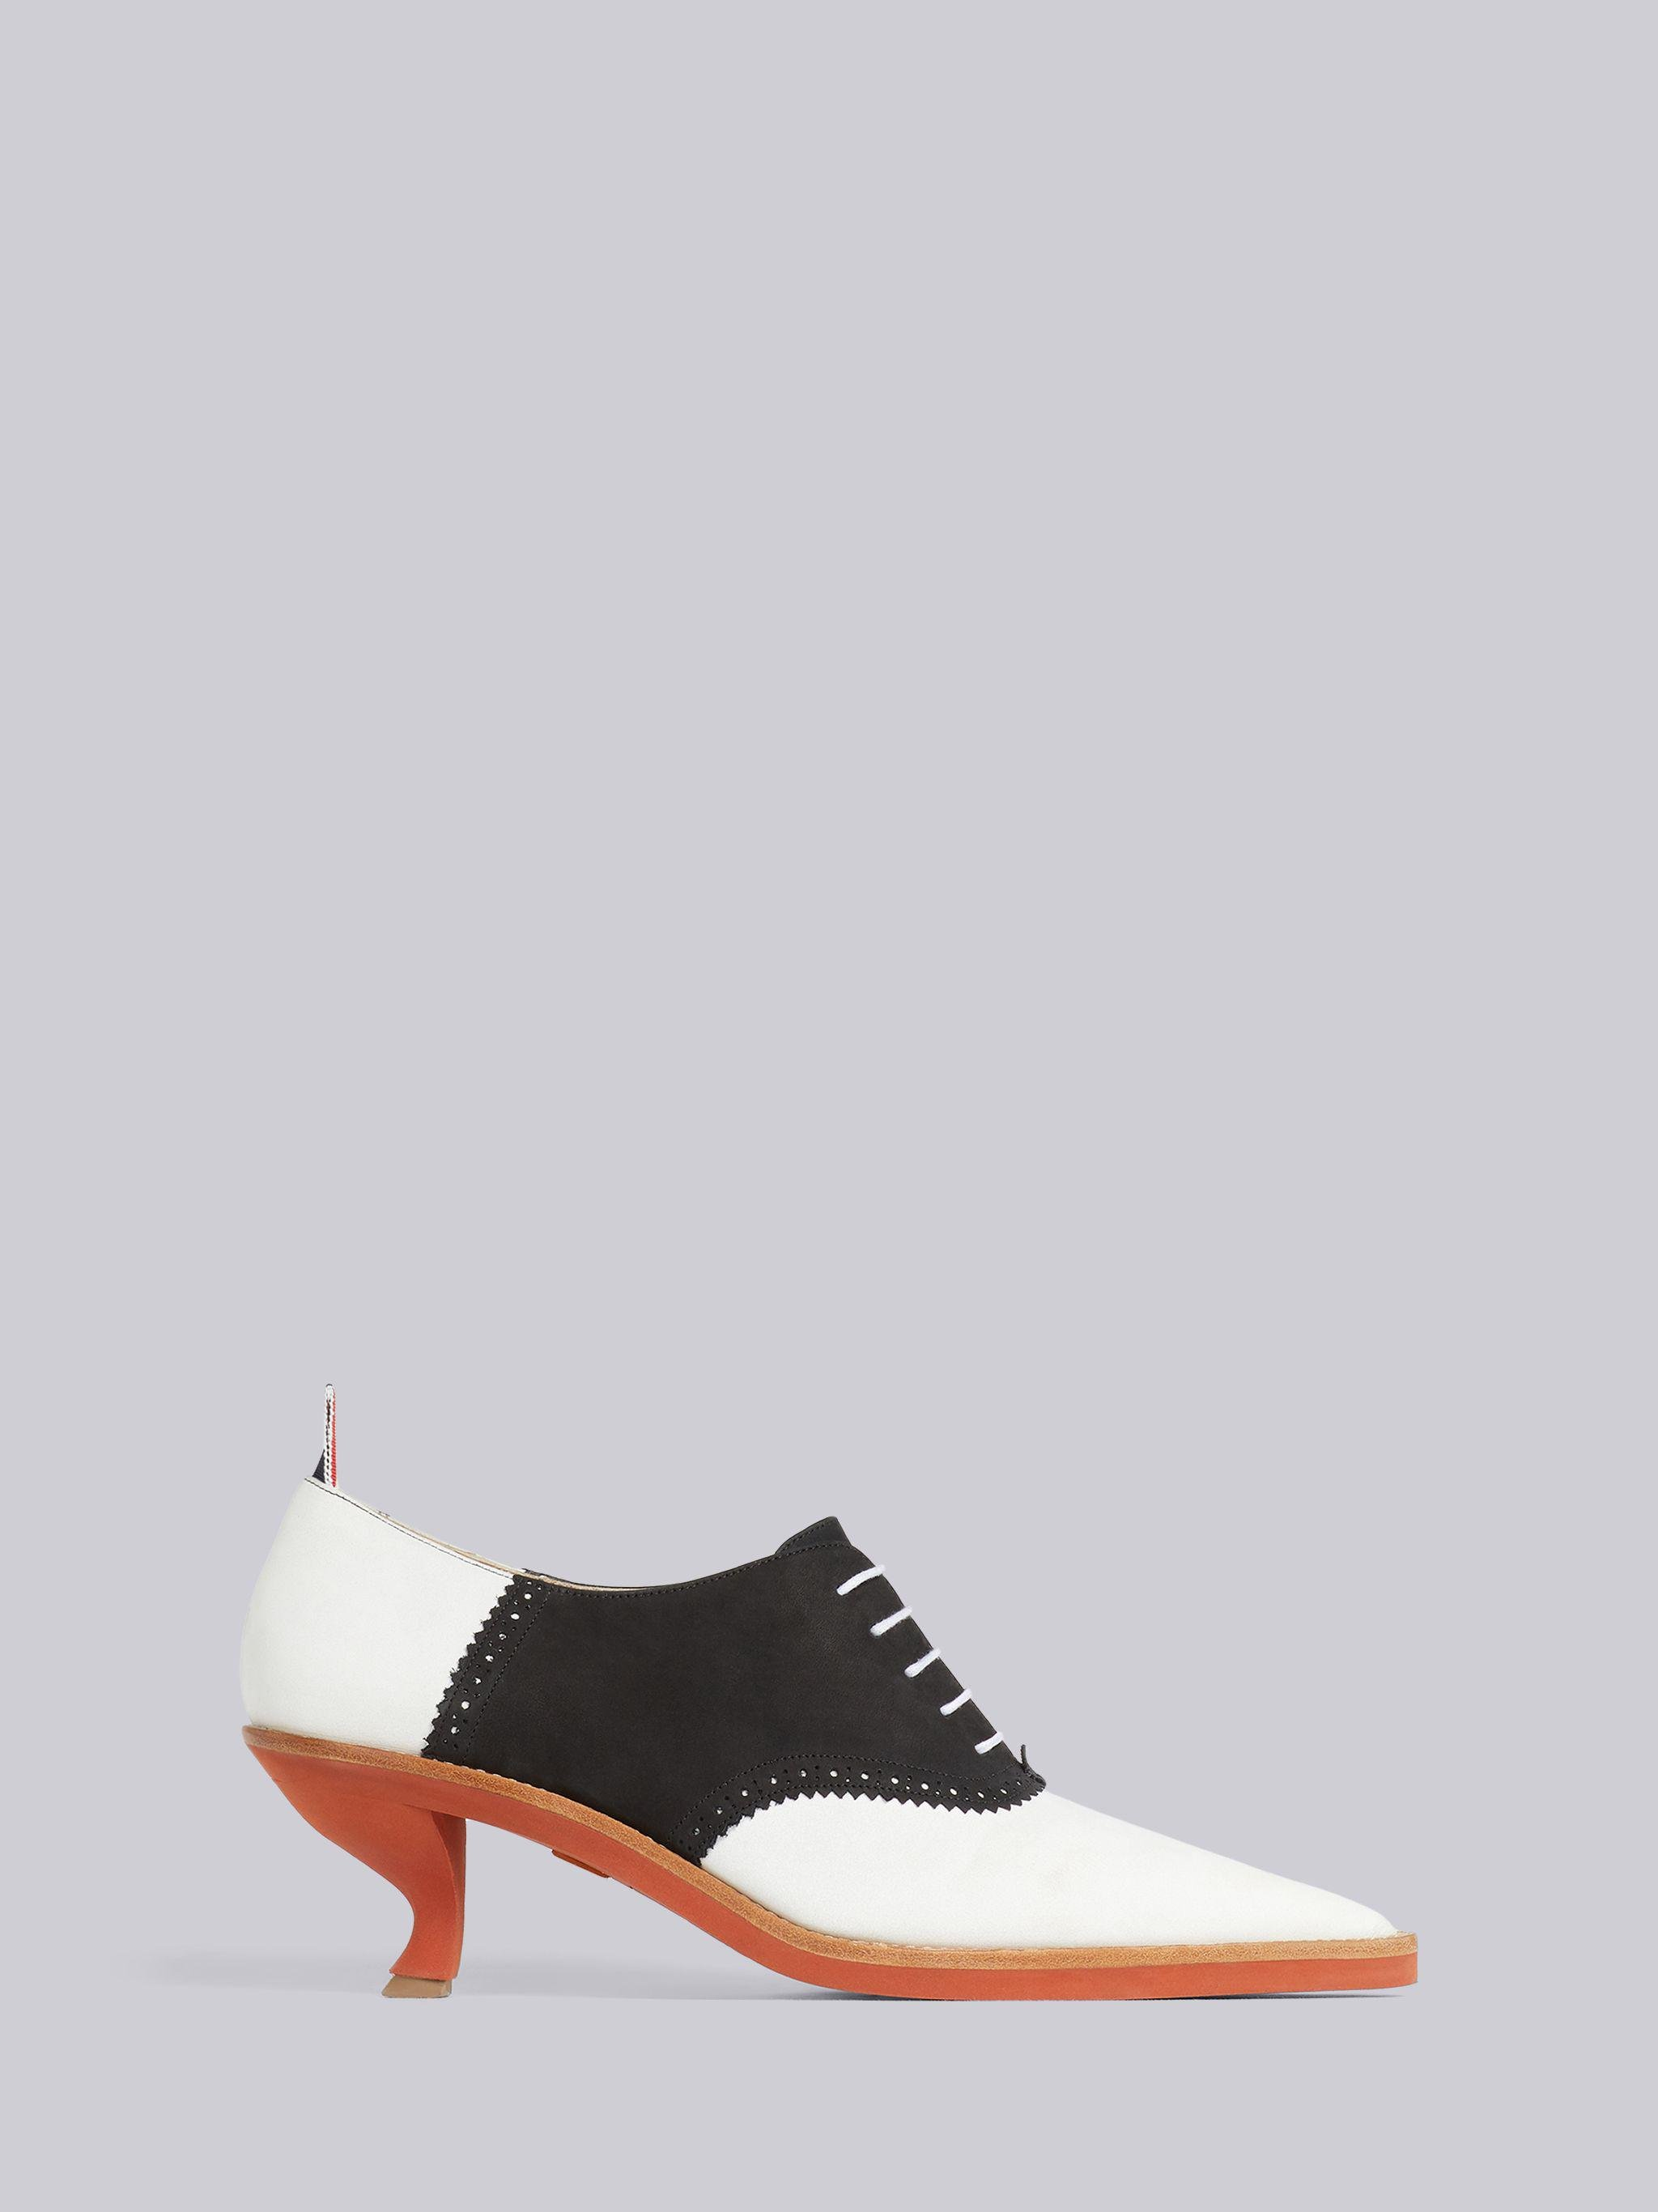 Black and White Suede 50mm Curved Heel Micro Sole Saddle Shoe